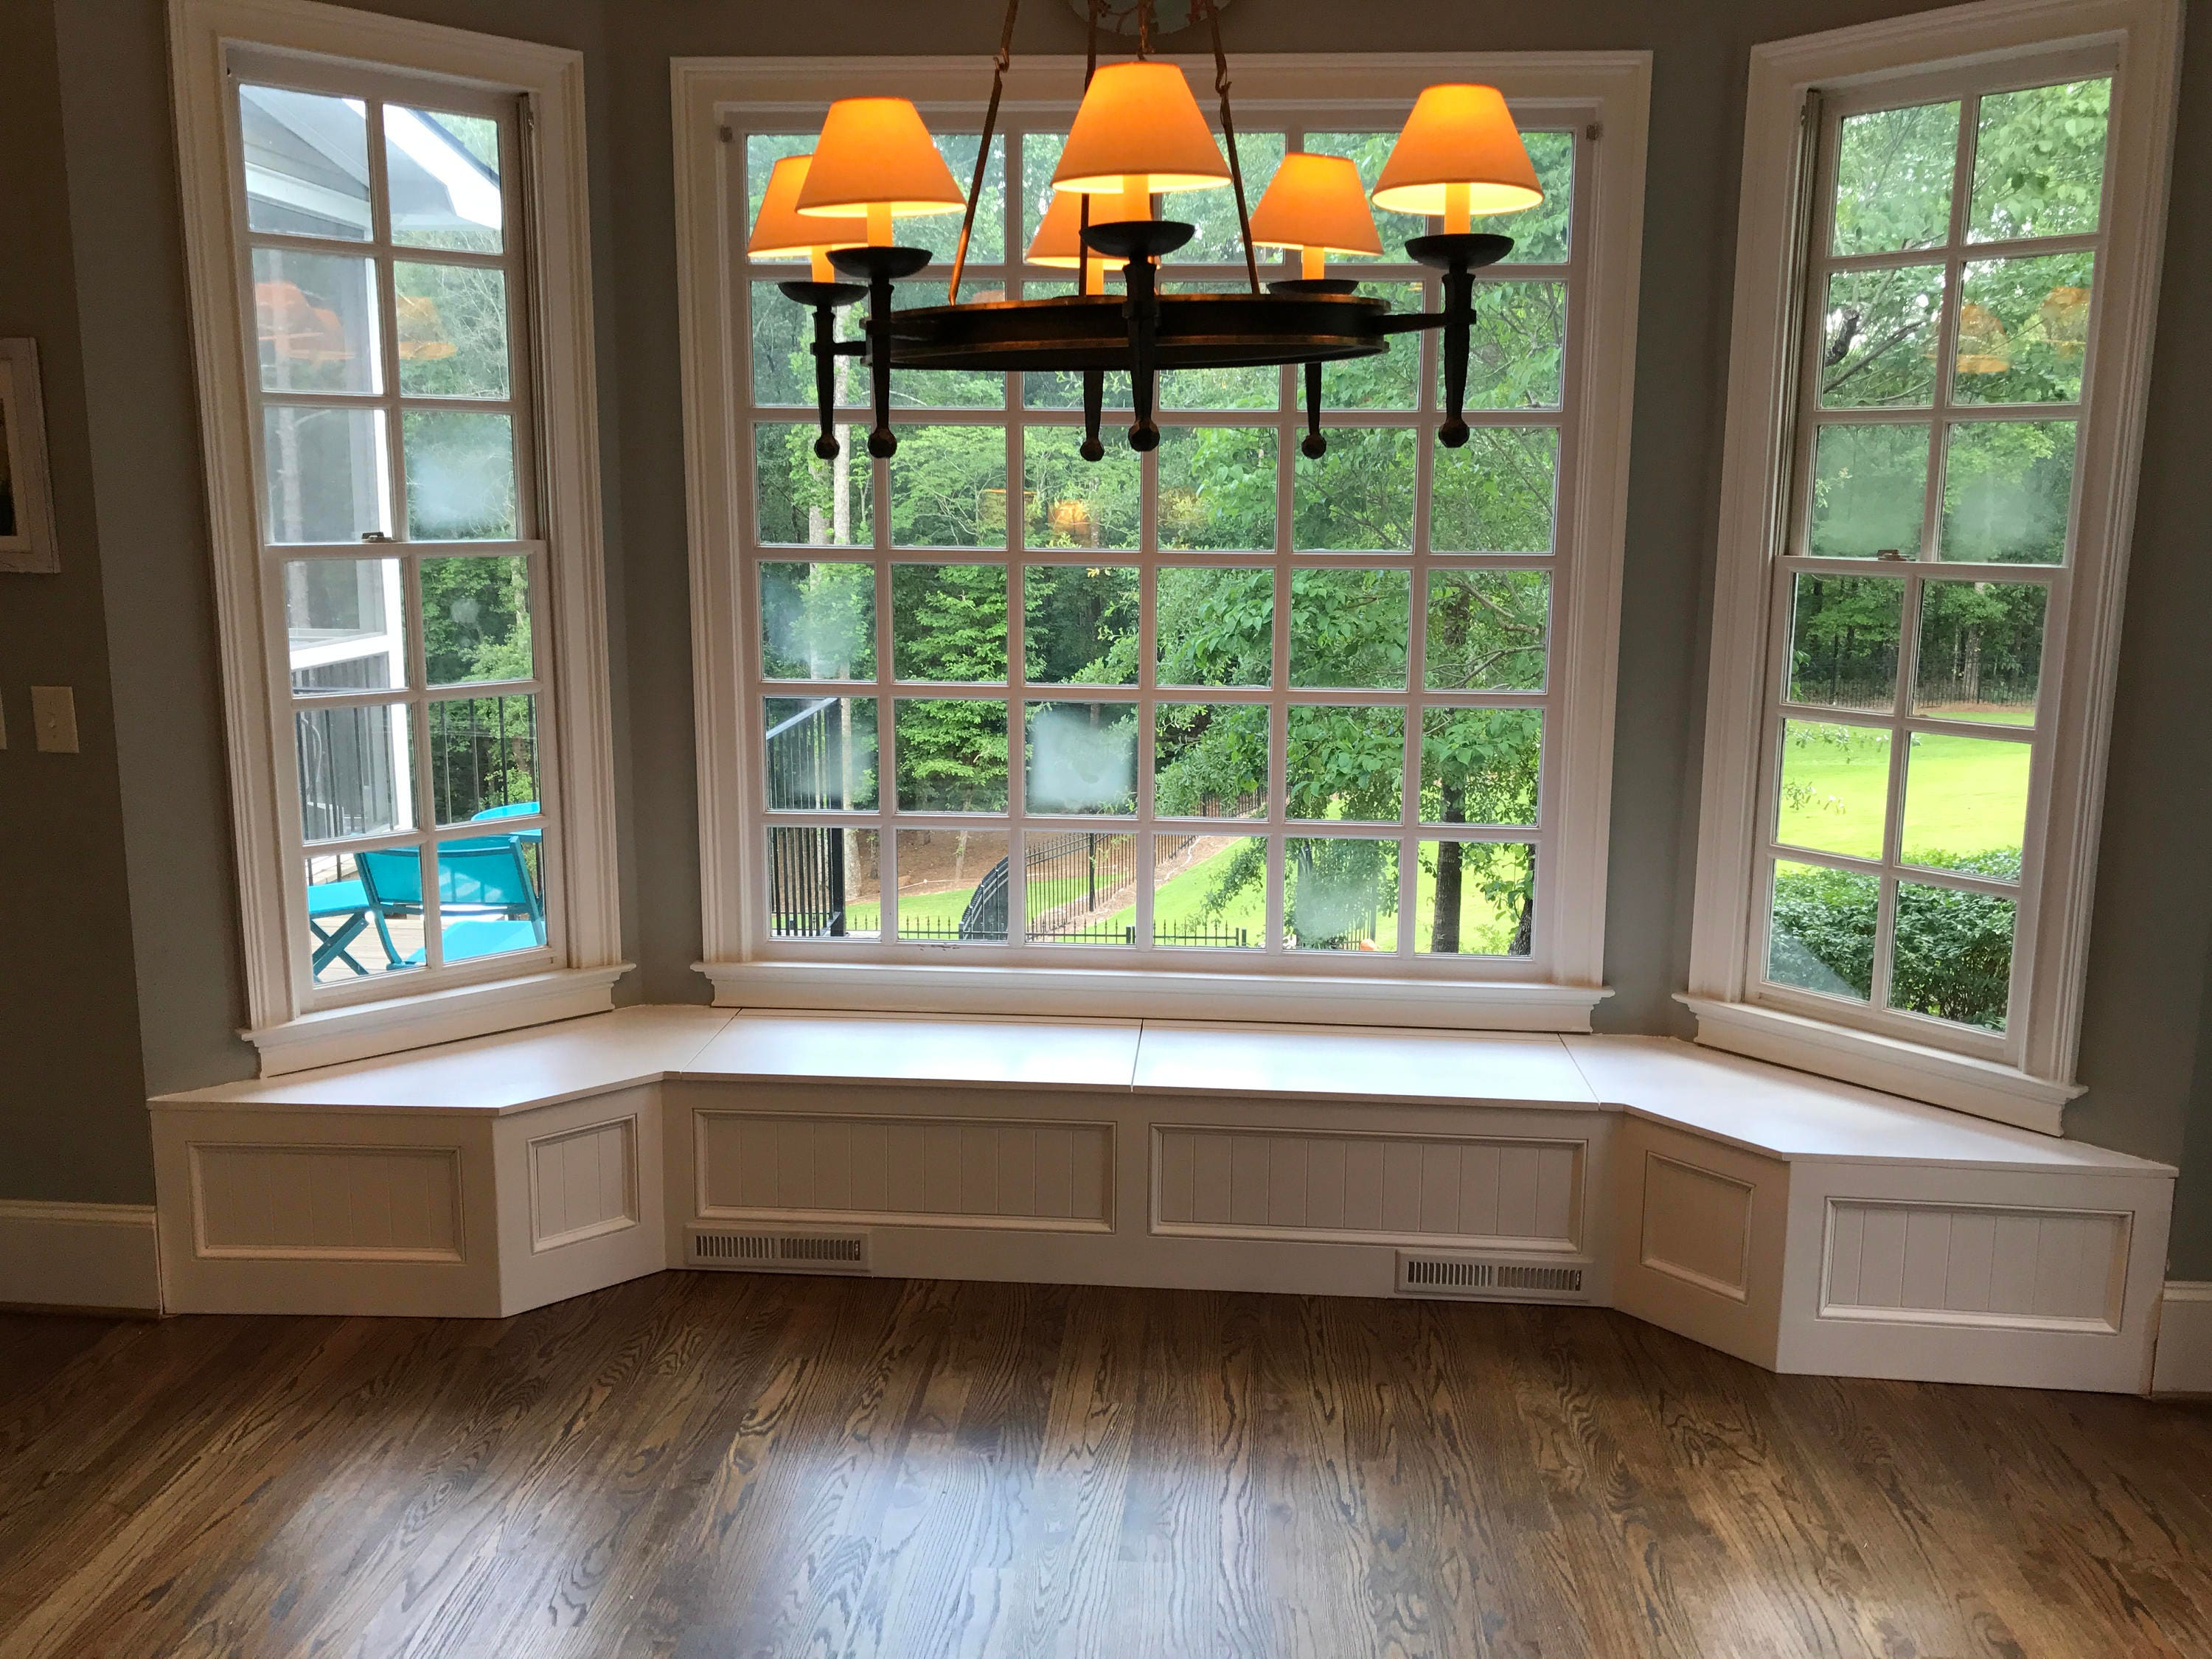 Banquette Bench for a Bay Window, kitchen seating, shaped bench ...